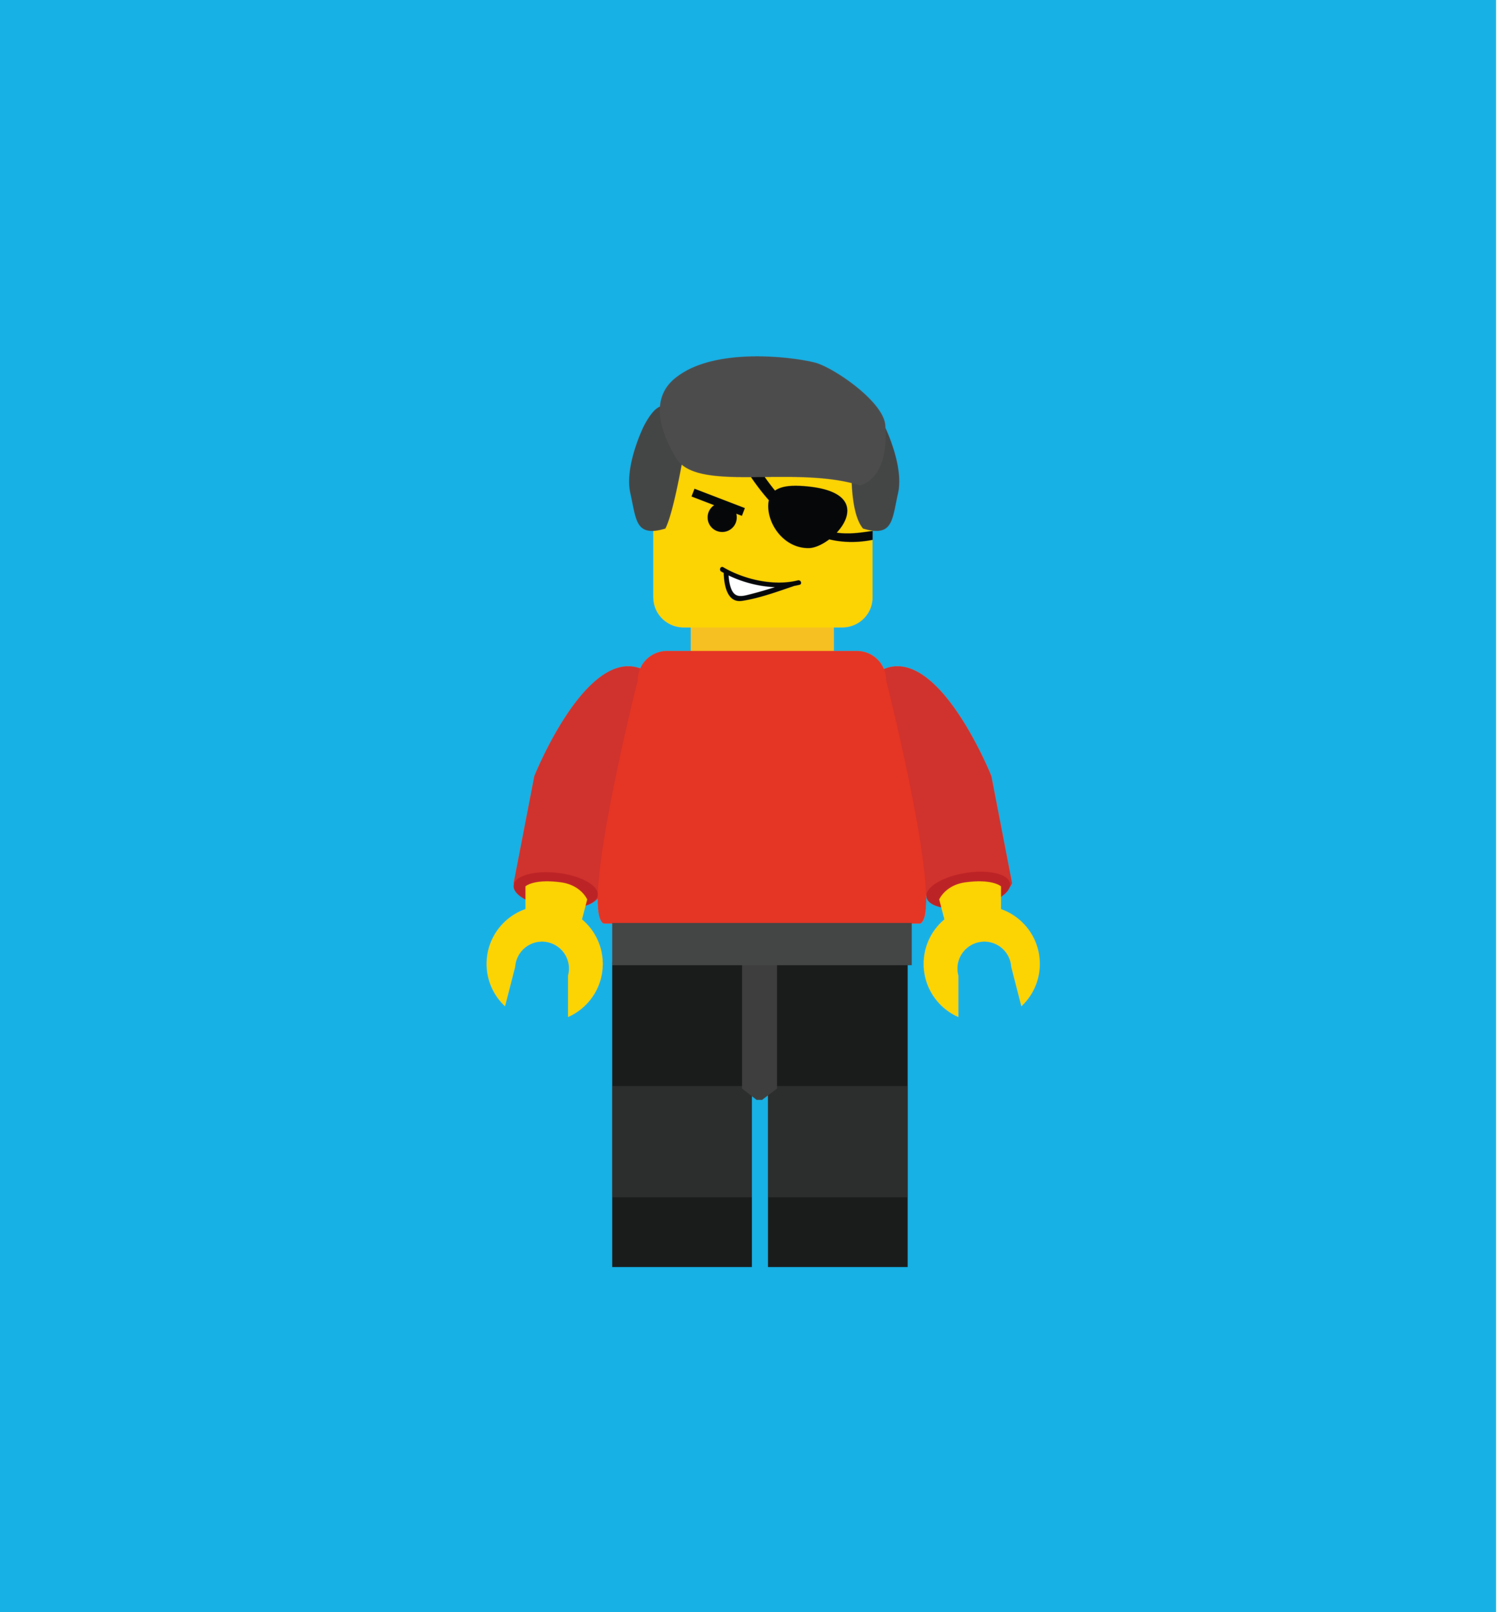 lego+guys-06.png